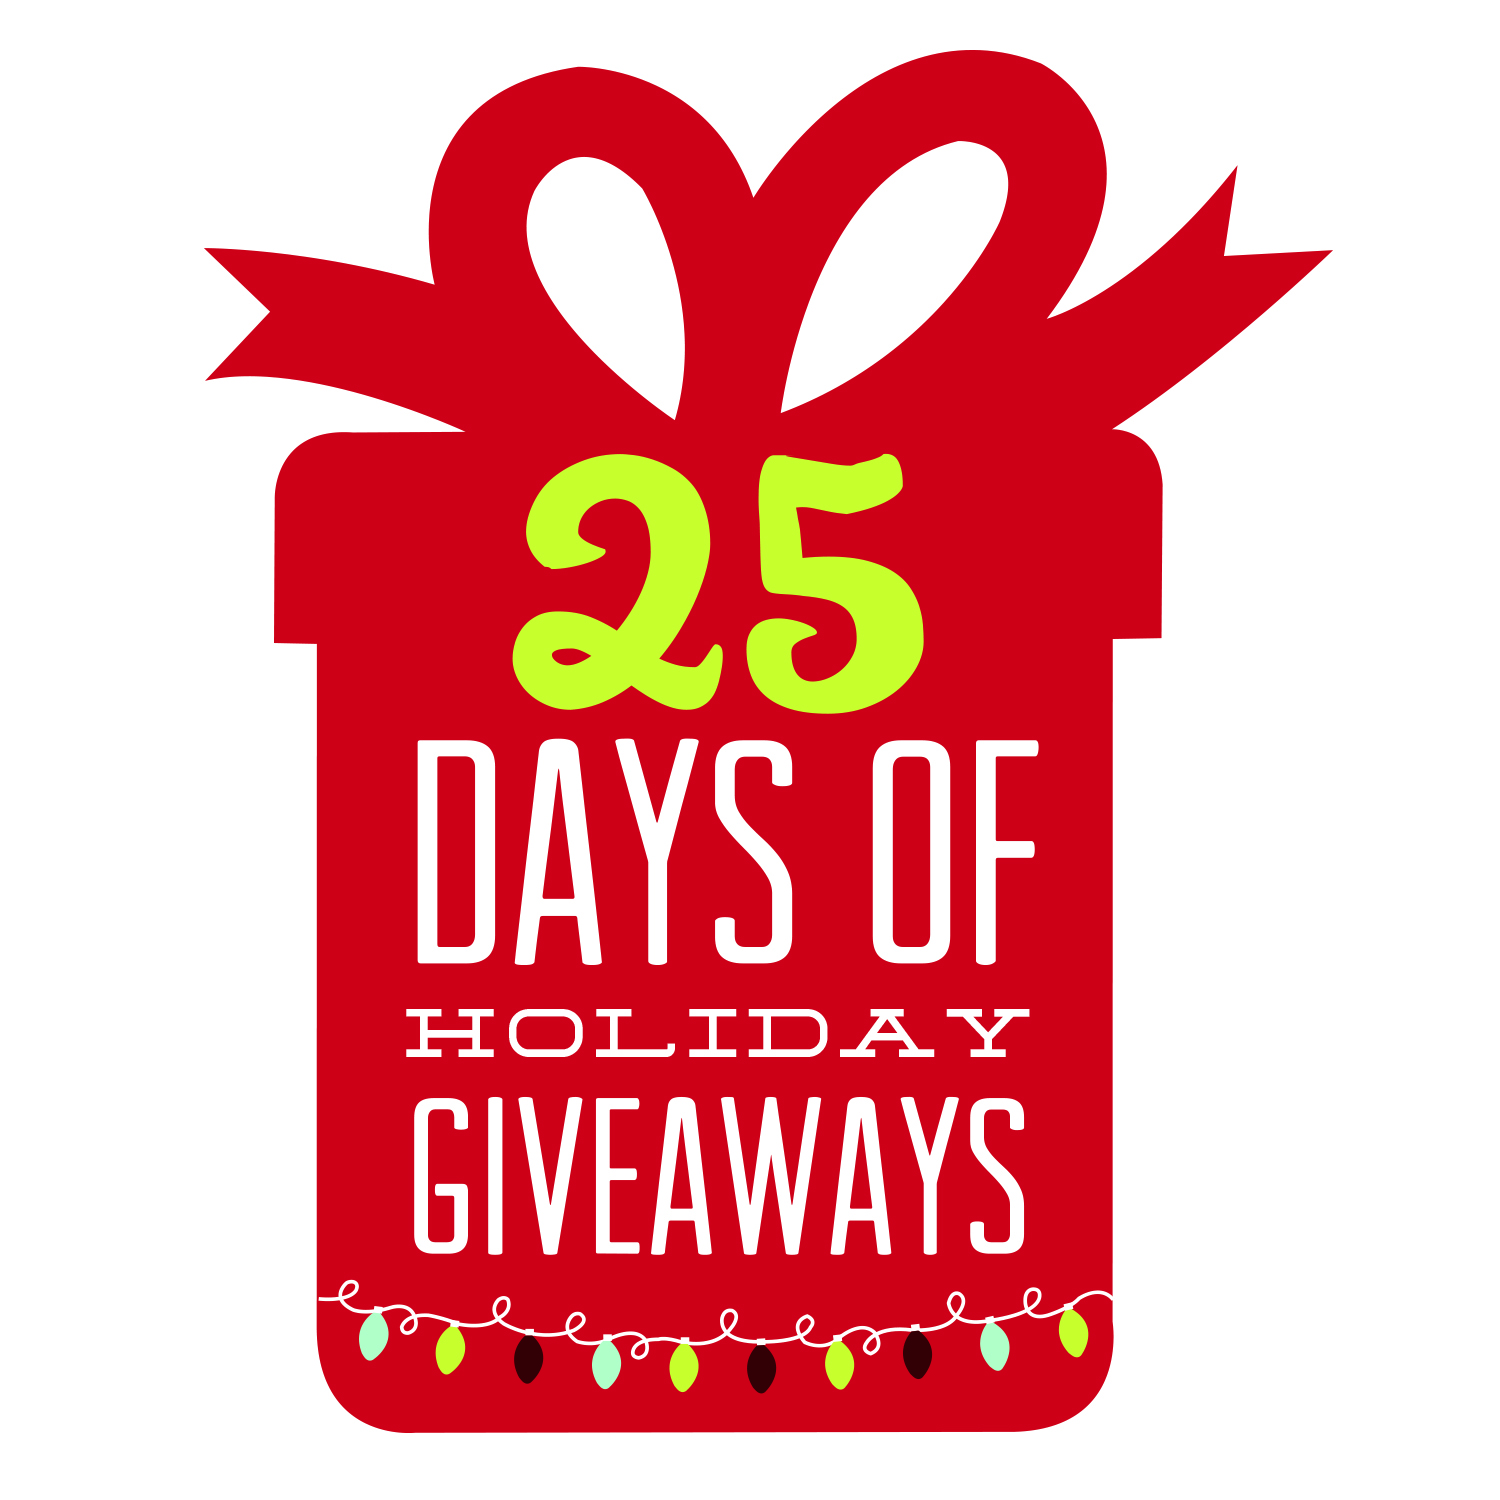 days of holiday giveaways one toy everyday night helper from 25th to 19th radio flyer will be giving away one toy each day to enter simply radioflyer com and click on the 25